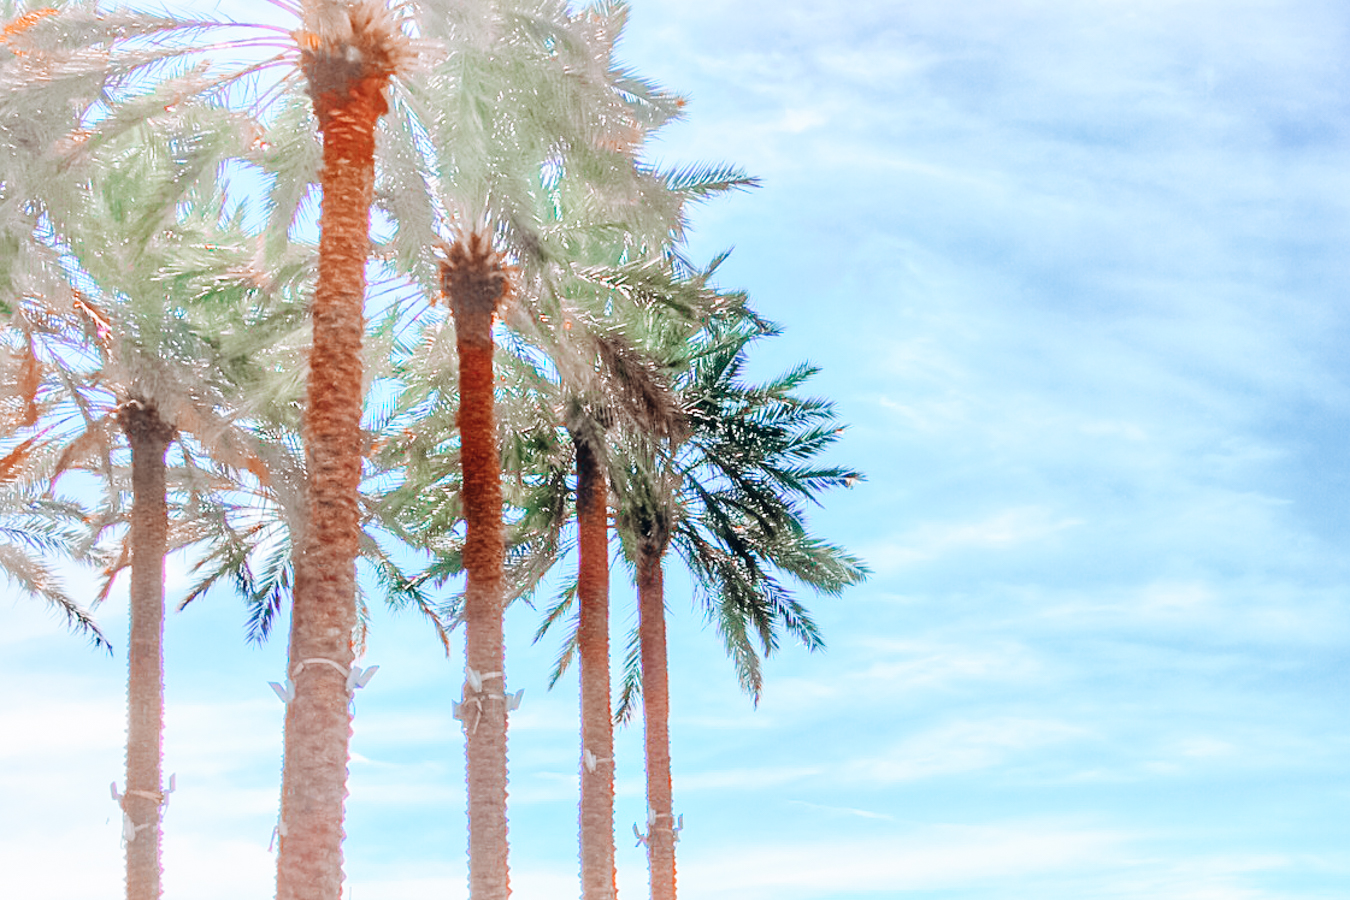 Palm trees and a blue sky in Tampa